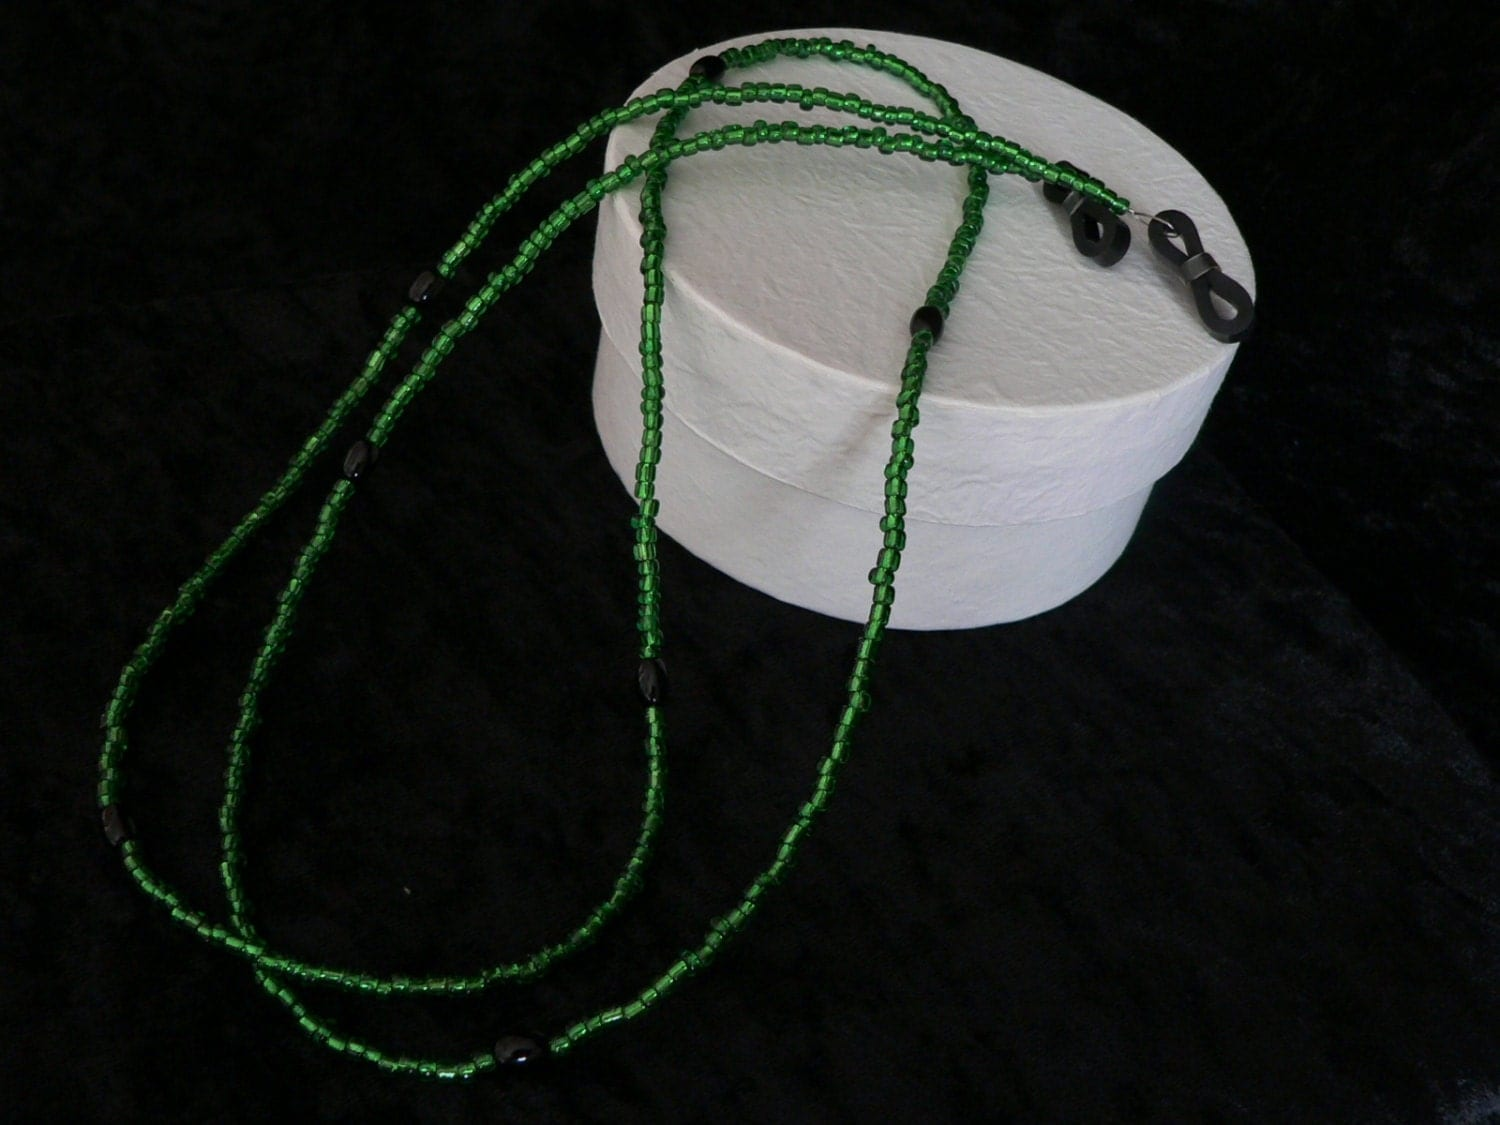 Bright Green Seed Bead Spectacle / Glasses Chain with Black